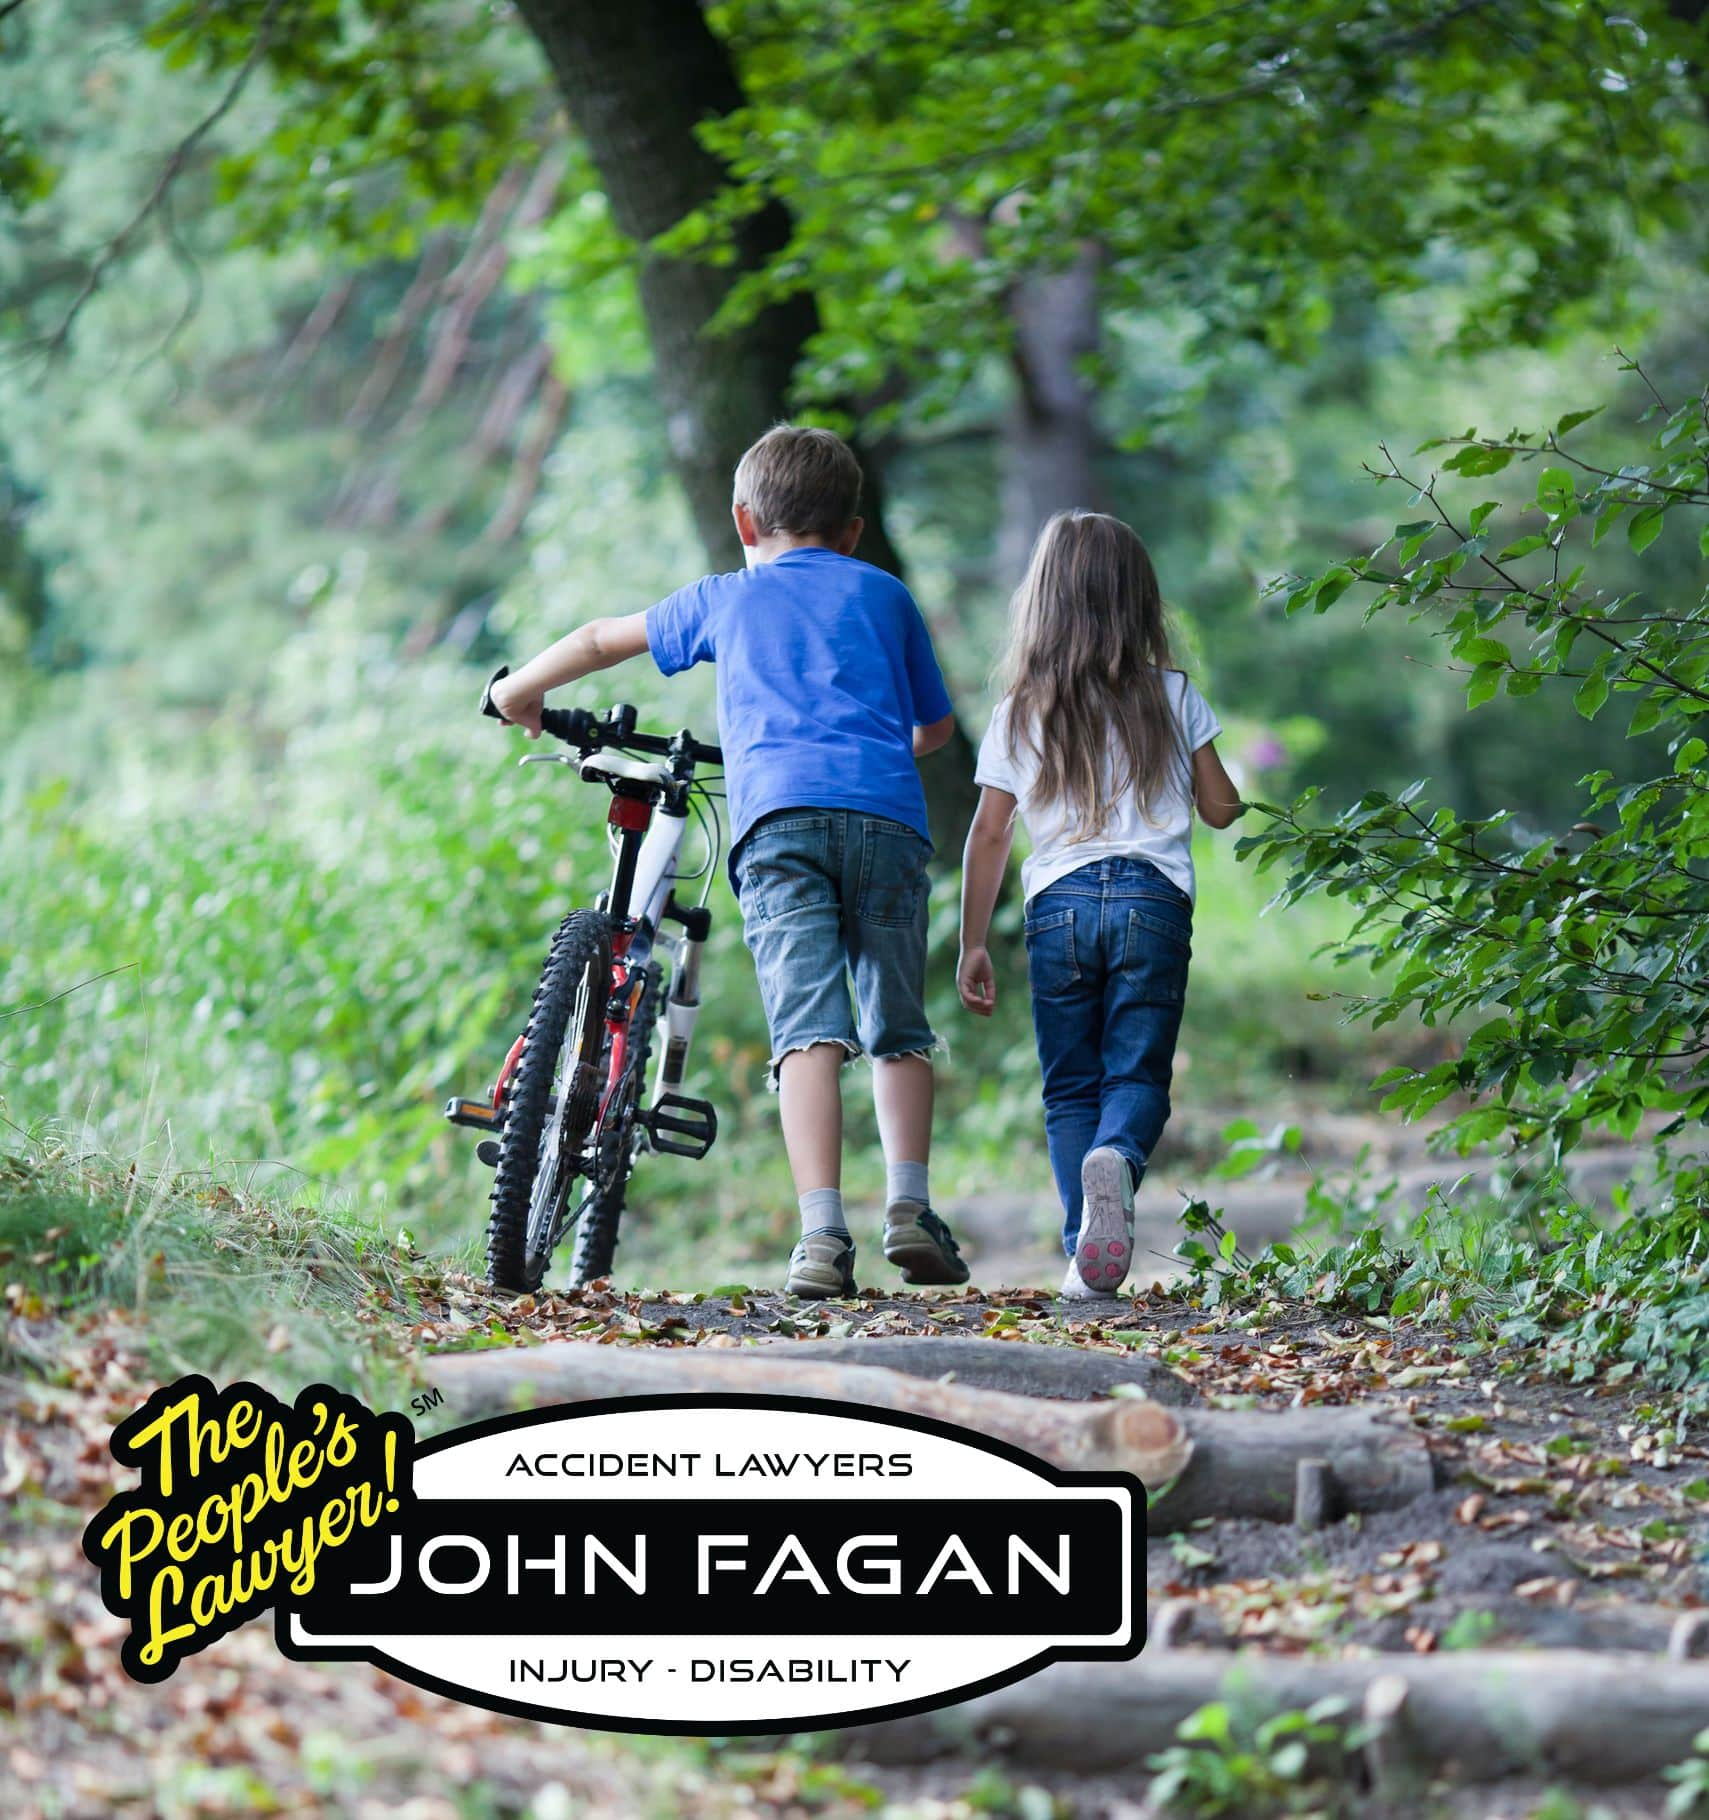 Back to School Safety Tips for Walkers and Bike Riders